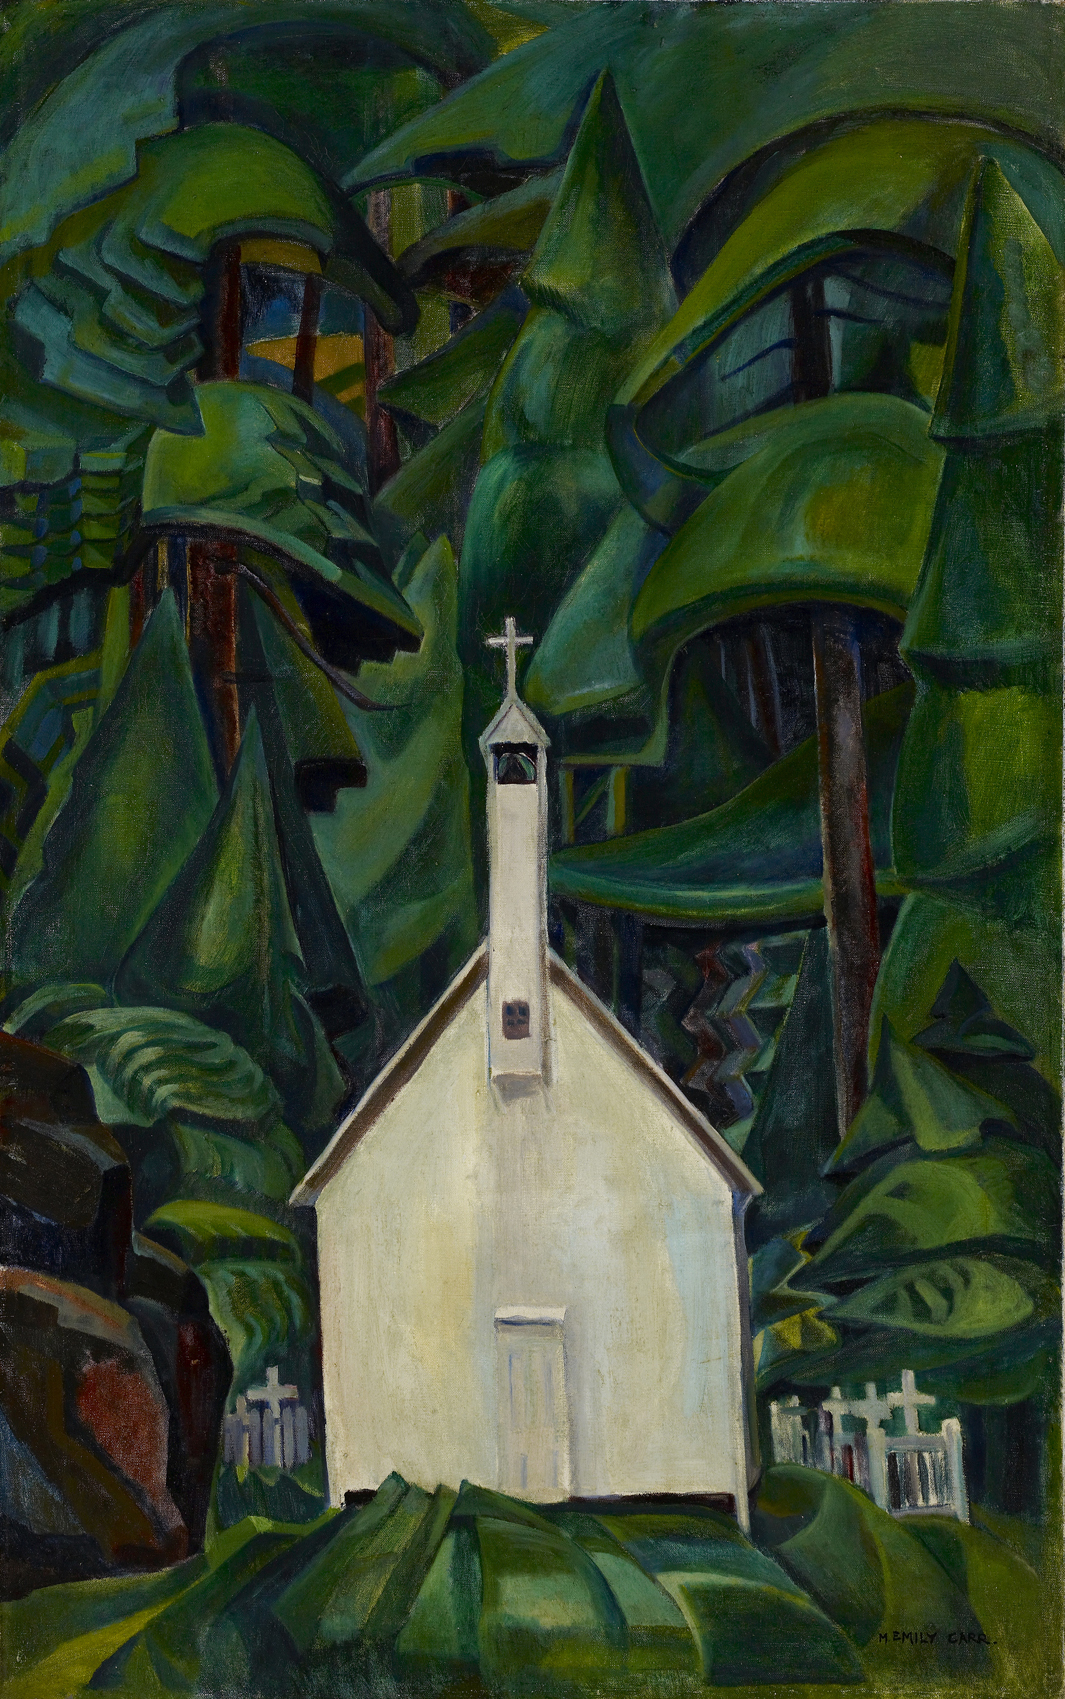 Emily Carr, Indian Church, 1929, oil on canvas, 108.6 x 68.9 cm,  ART GALLERY OF ONTARIO, Bequest of Charles S Band, Toronto.